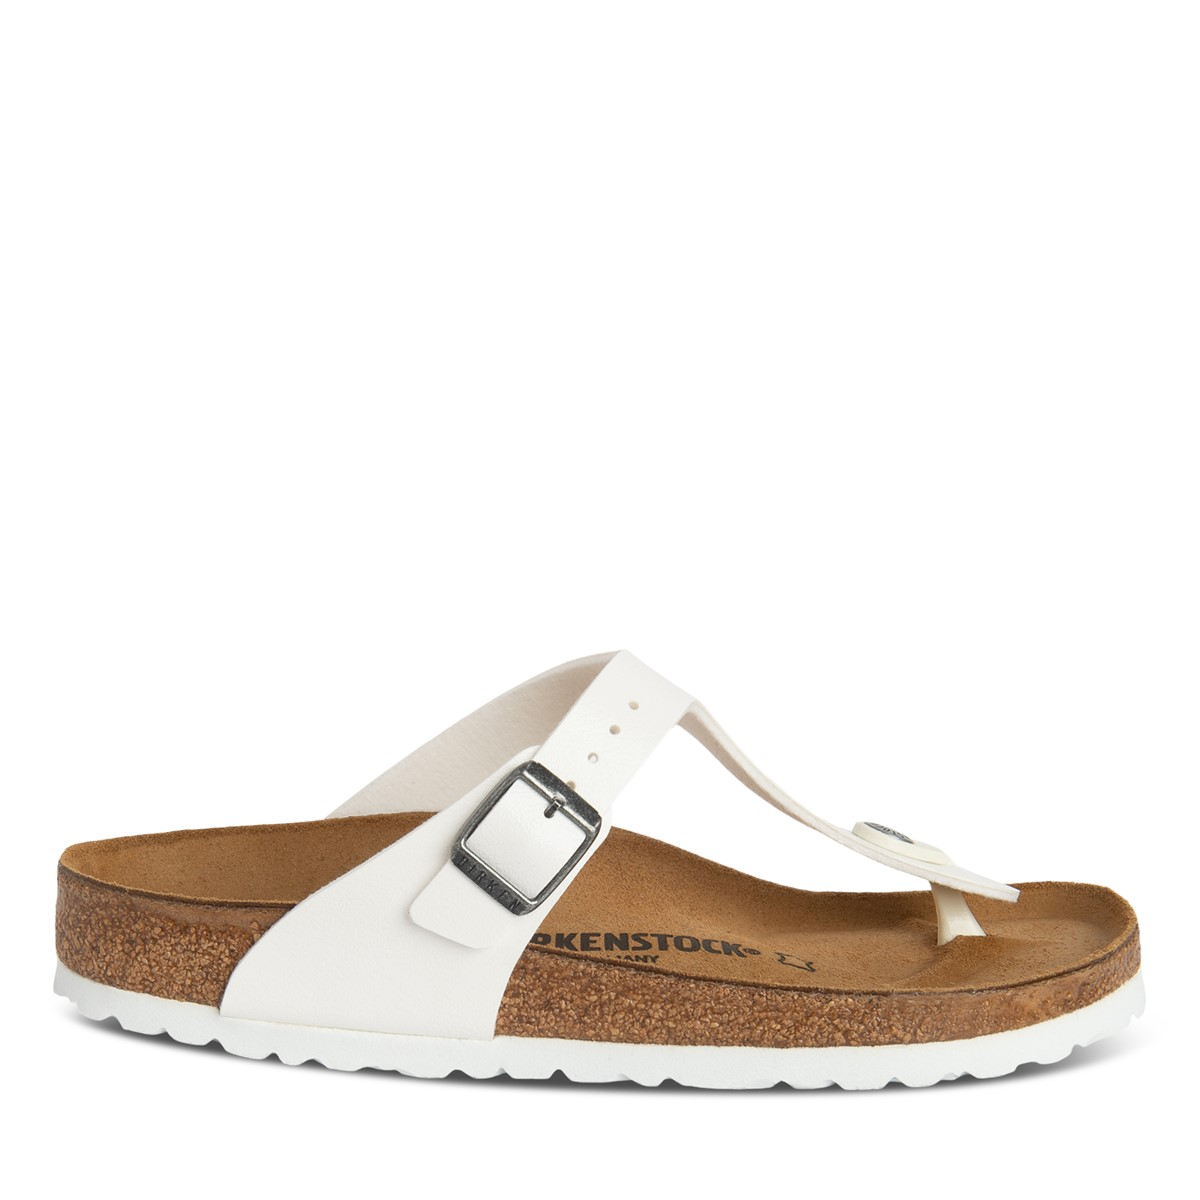 Women's Gizeh Thong Sandals in White